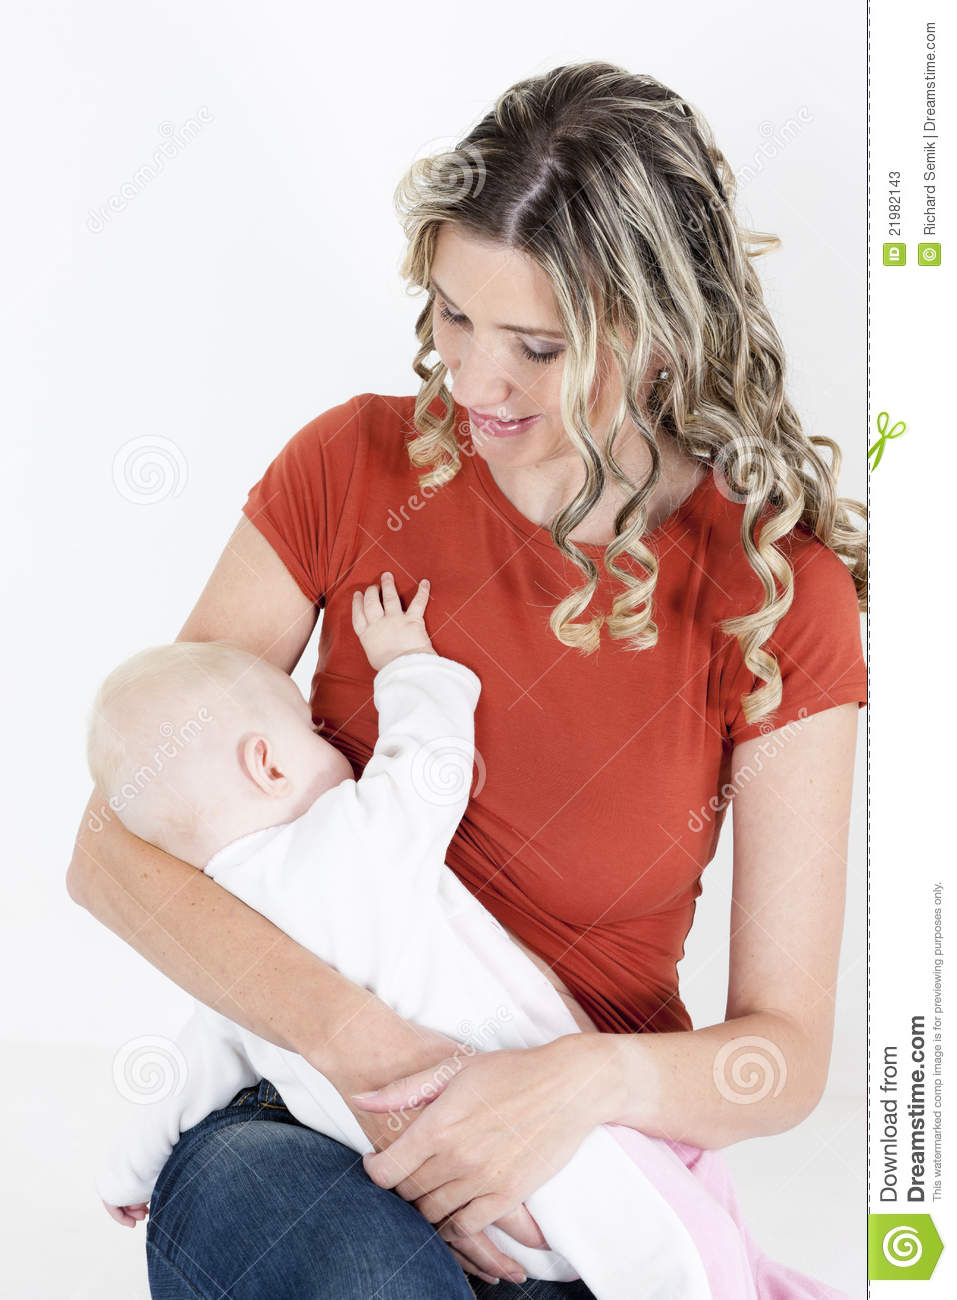 nursing care plan effective breastfeeding Nanda approved nursing diagnosis for nursing care plan activity intolerance activity effective breastfeeding list of nanda-approved nursing diagnoses.